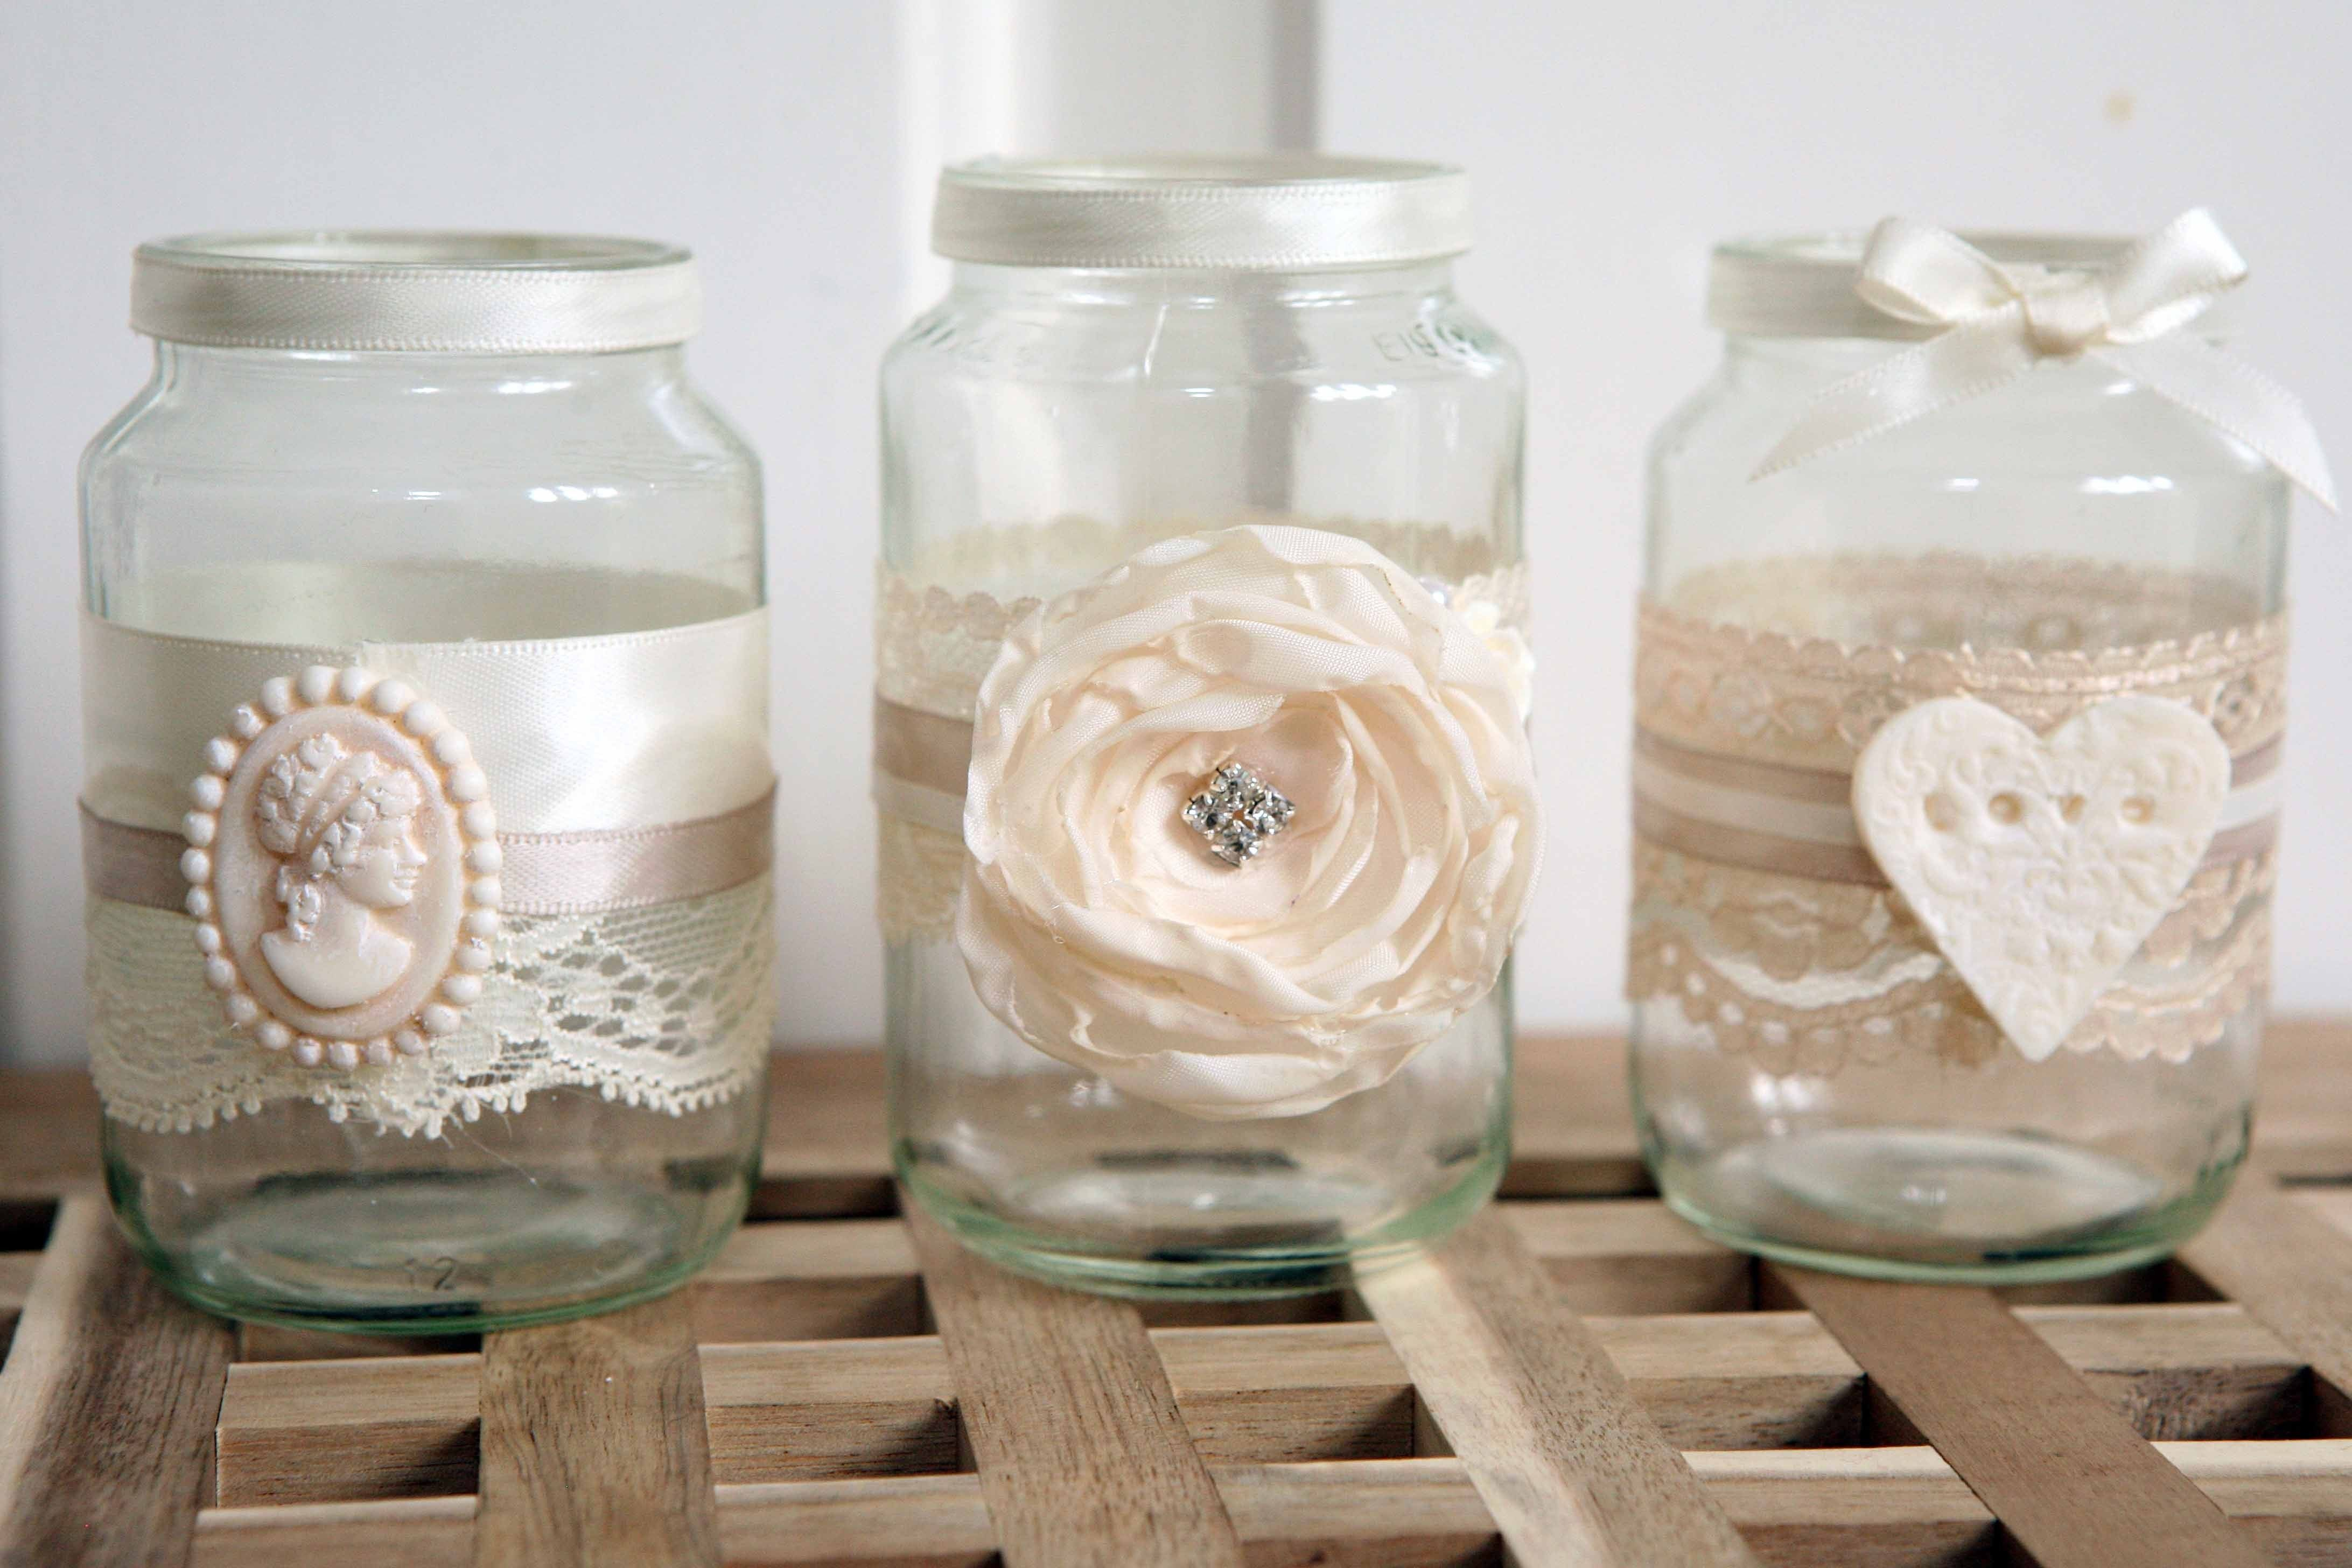 Bouquets, Photobooth props & stationery - Shabby Chic Jam Jars ...